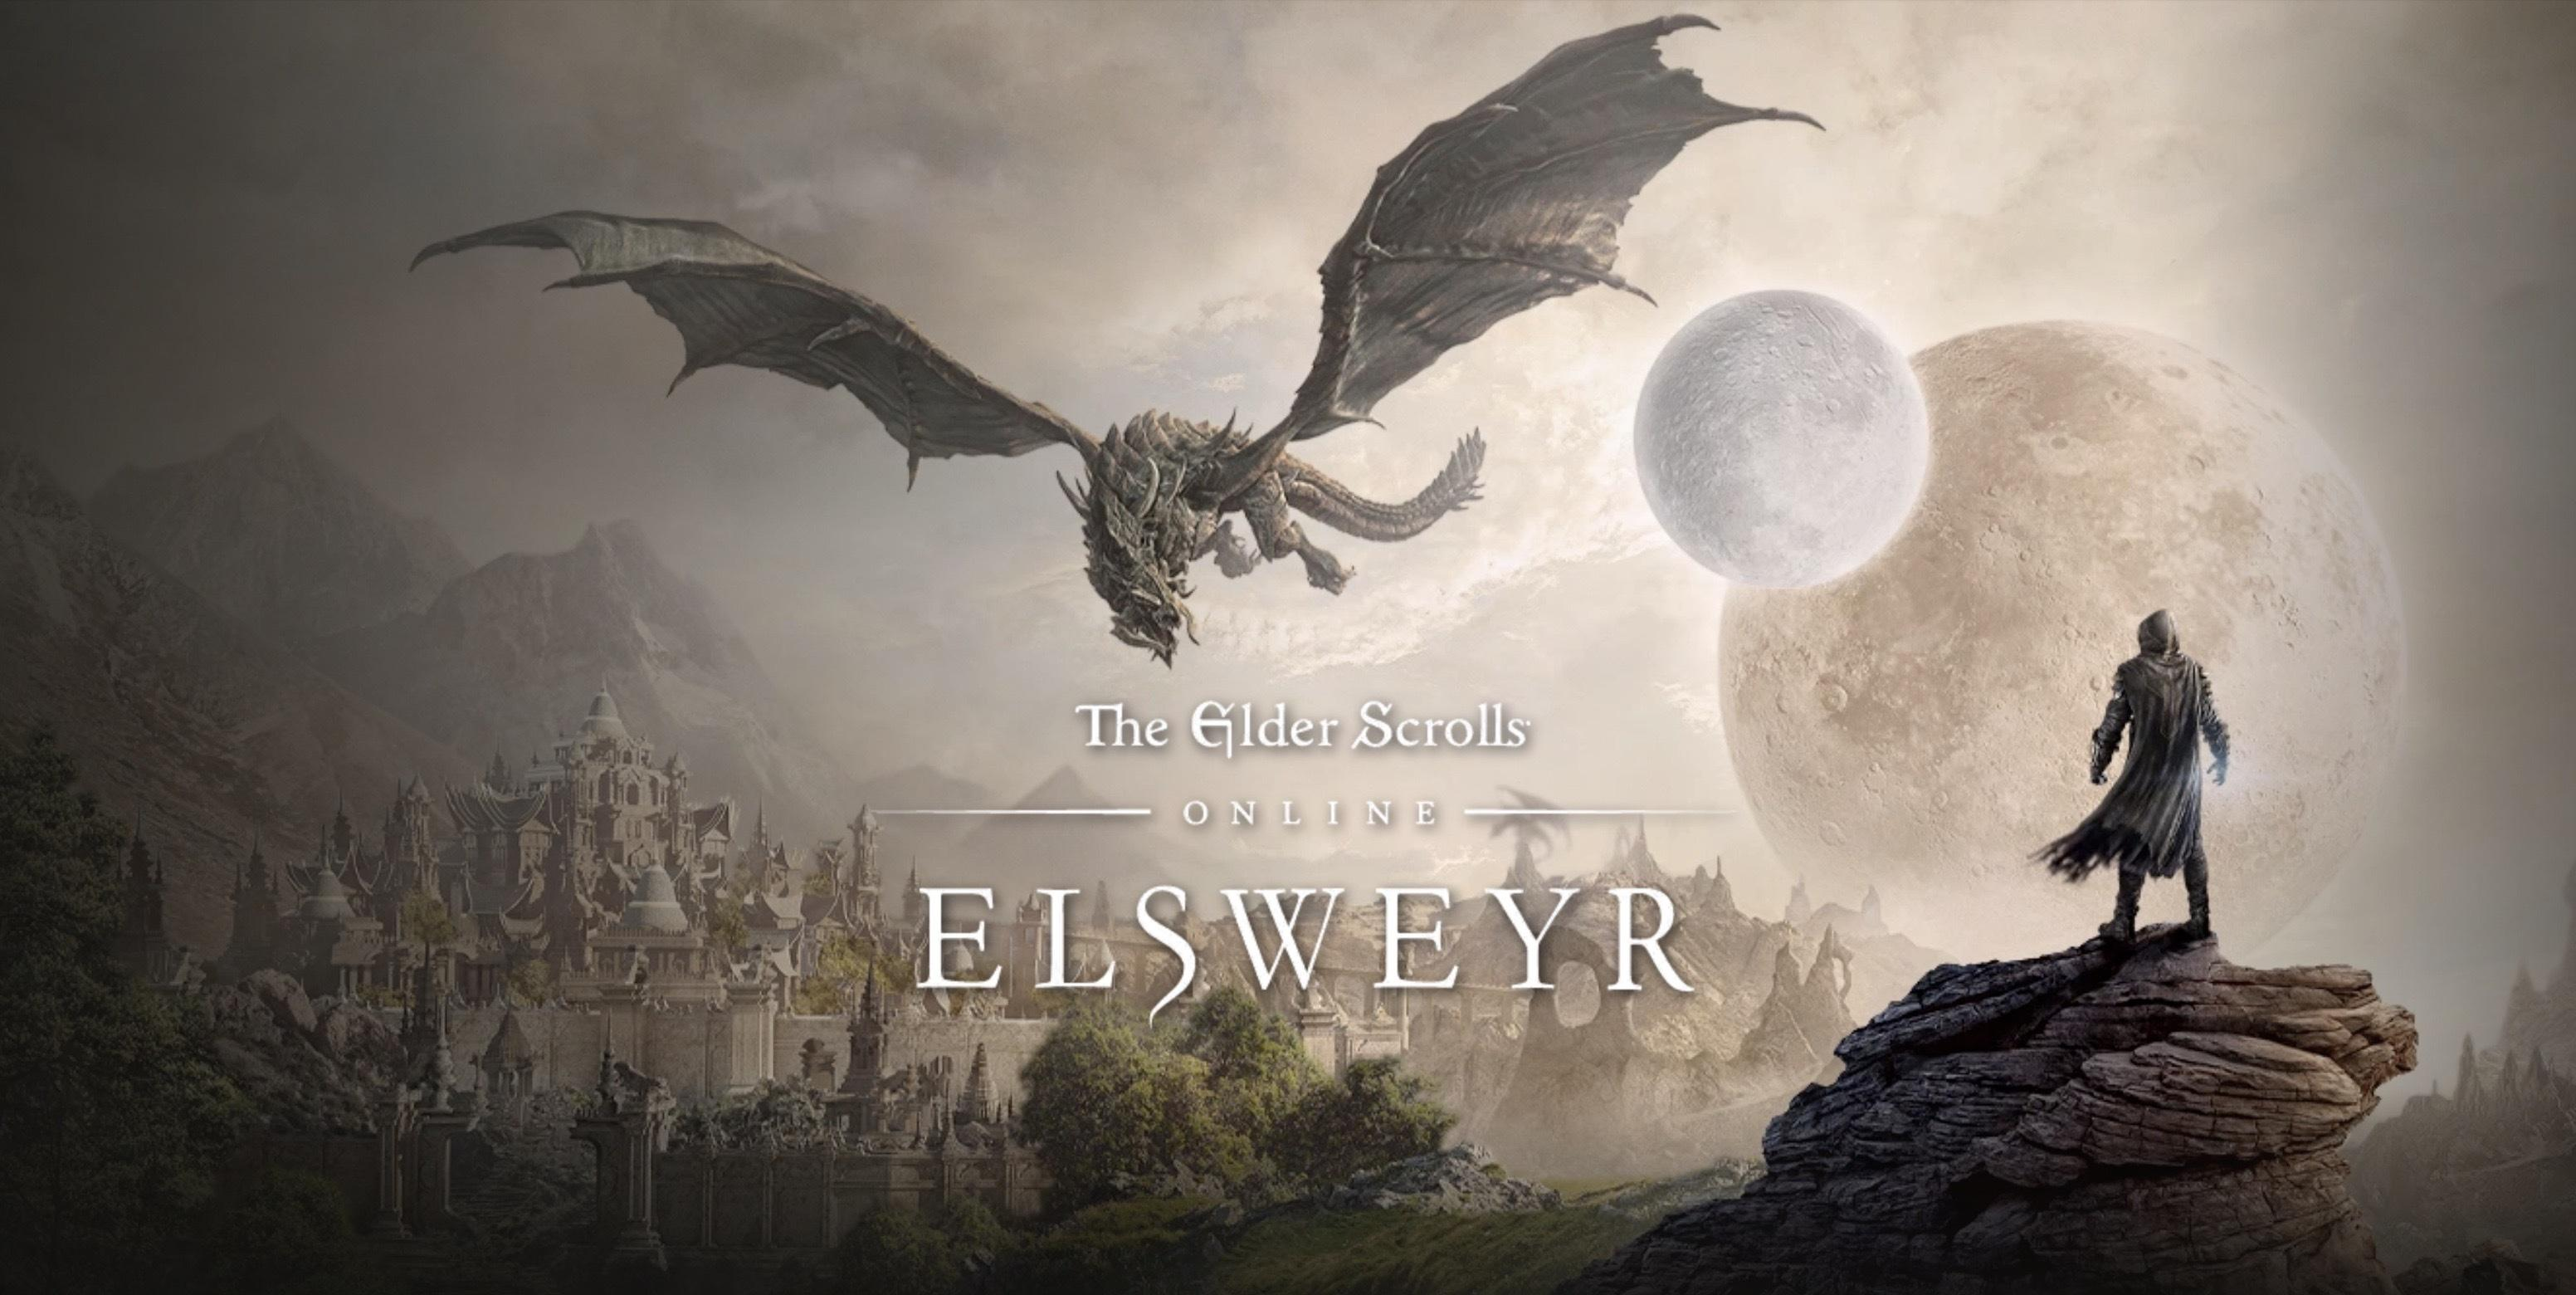 The Elder Scrolls Online 'Elsweyr' Expansion Takes Players